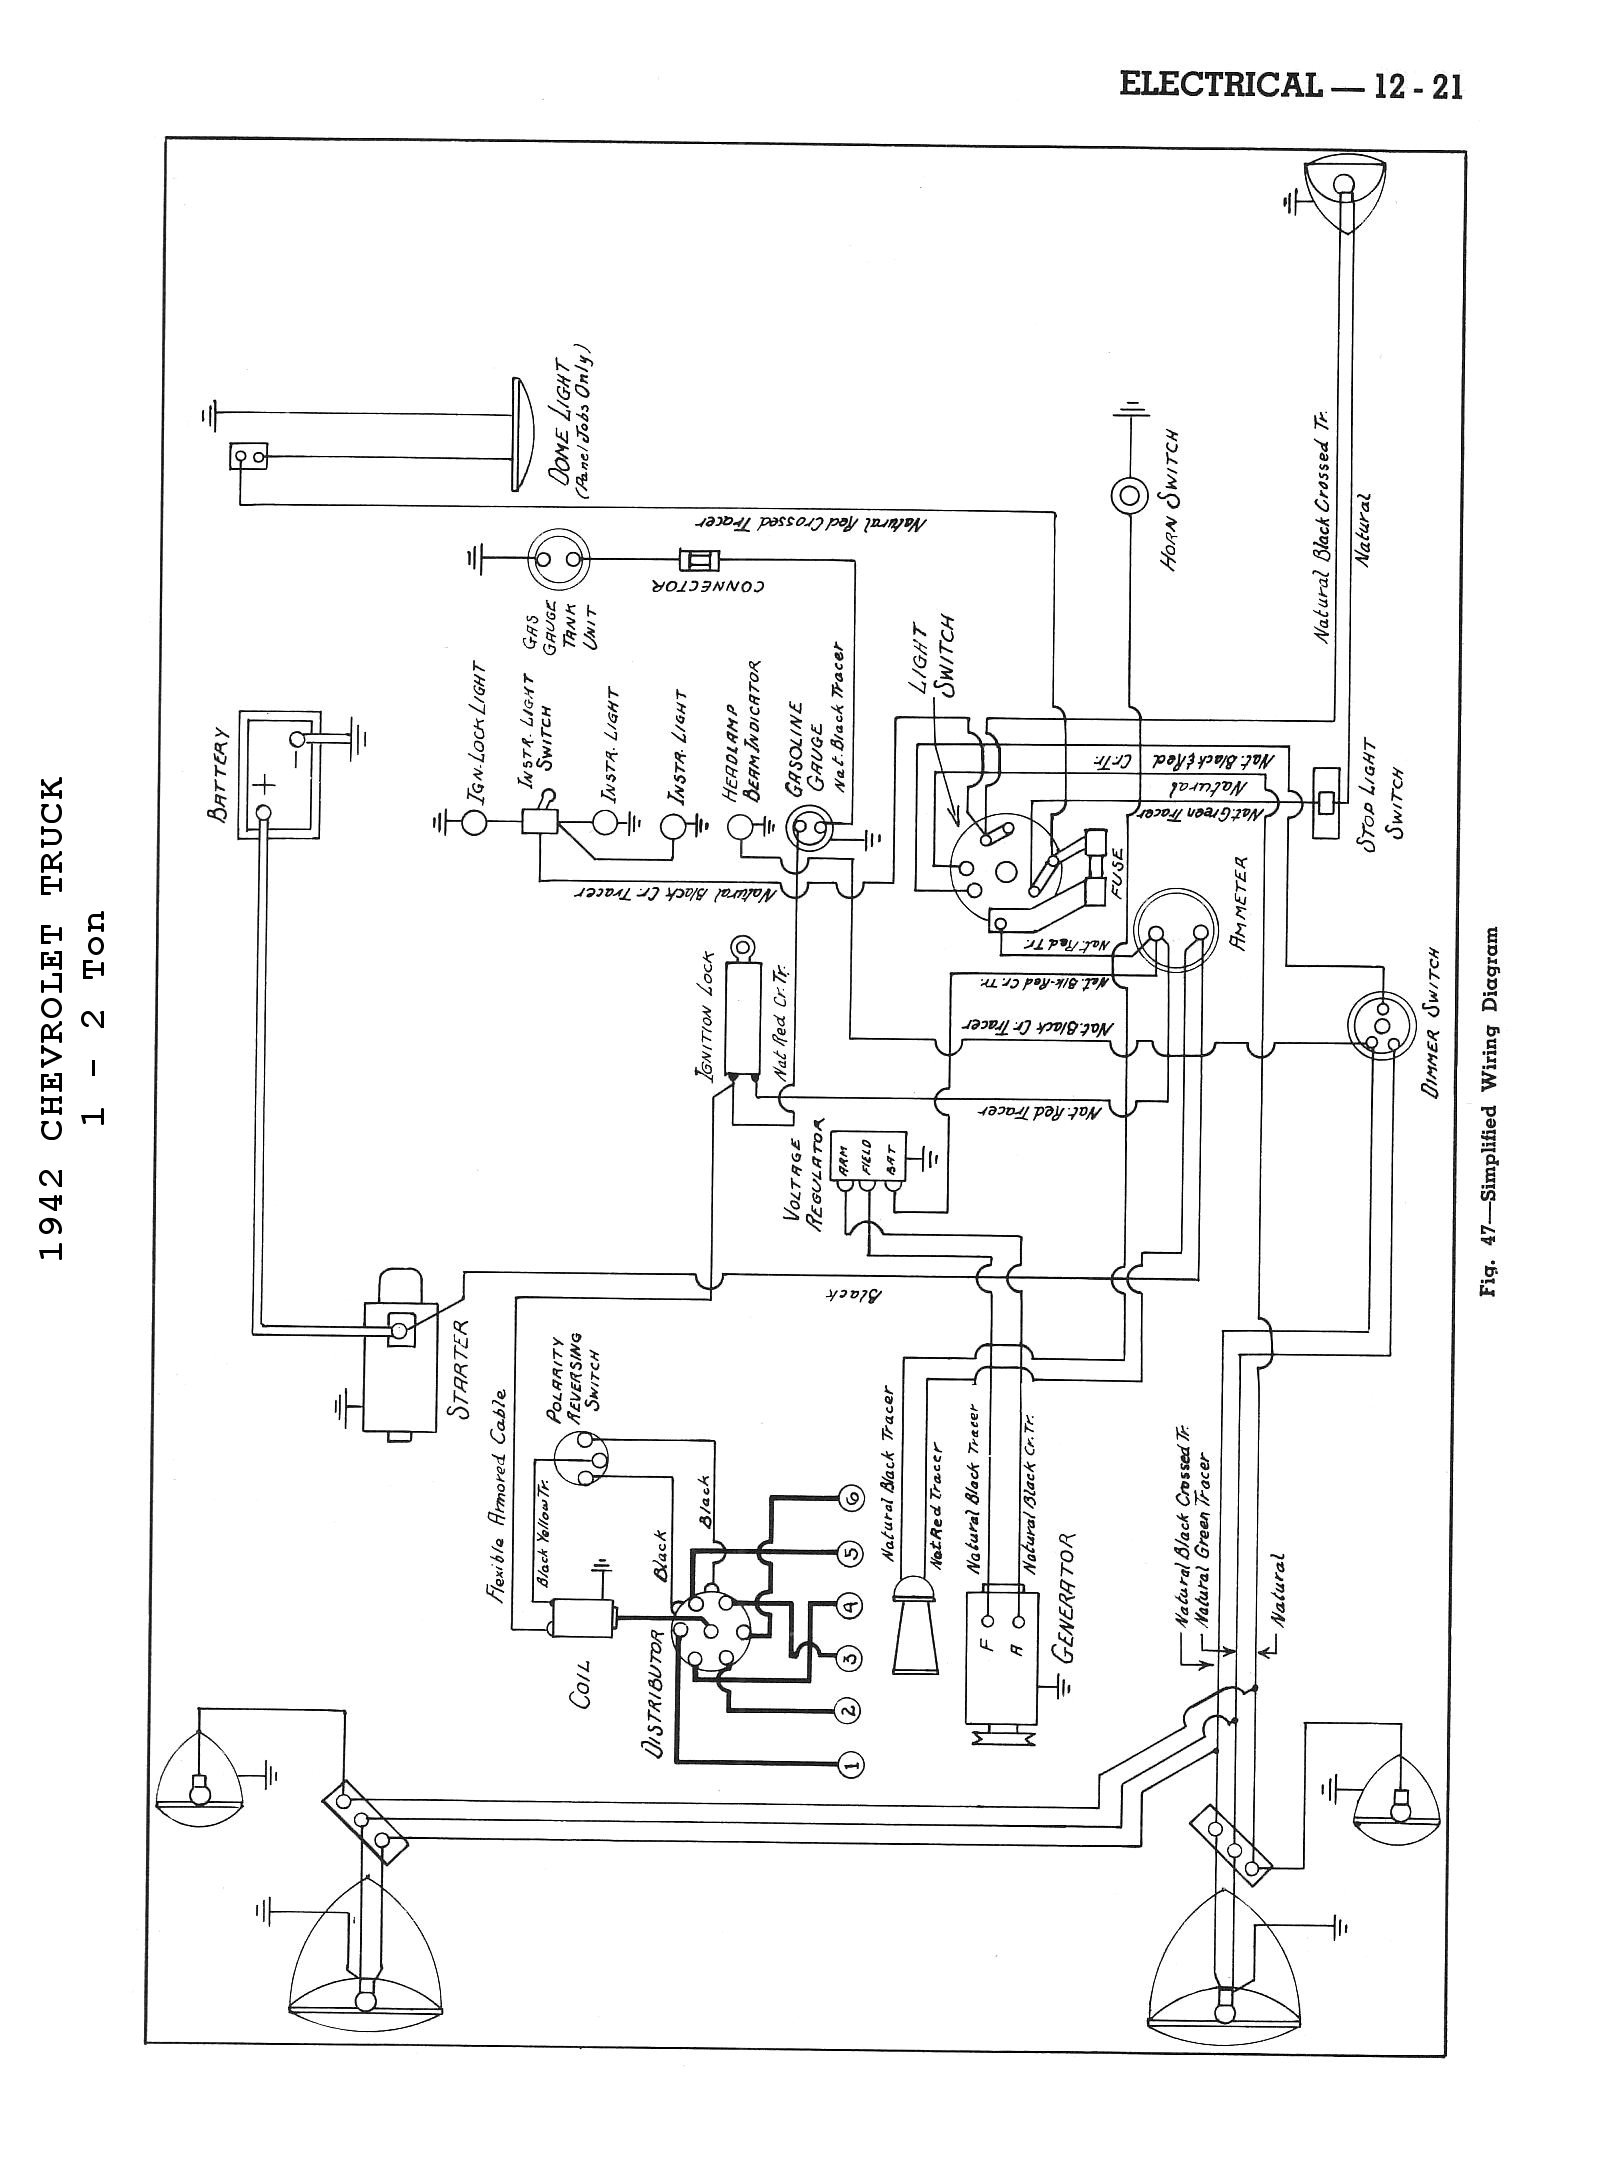 42cm4x2t1221 cm wiring diagram cm hoist wiring diagram \u2022 wiring diagrams j hitachi electric chain hoist wiring diagram at bayanpartner.co